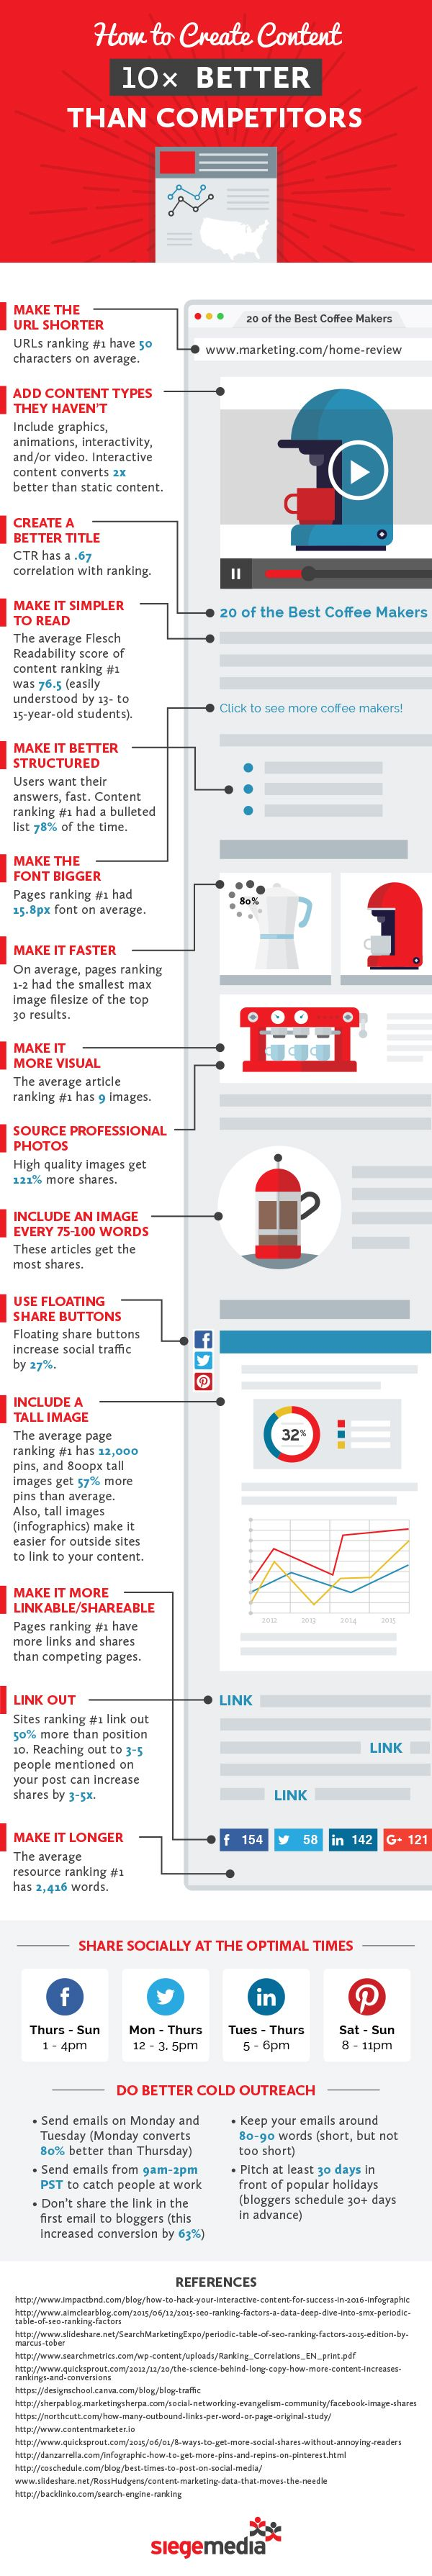 How to Create Blog Content That's 10 Times Better Than Your Competitors #Infographic